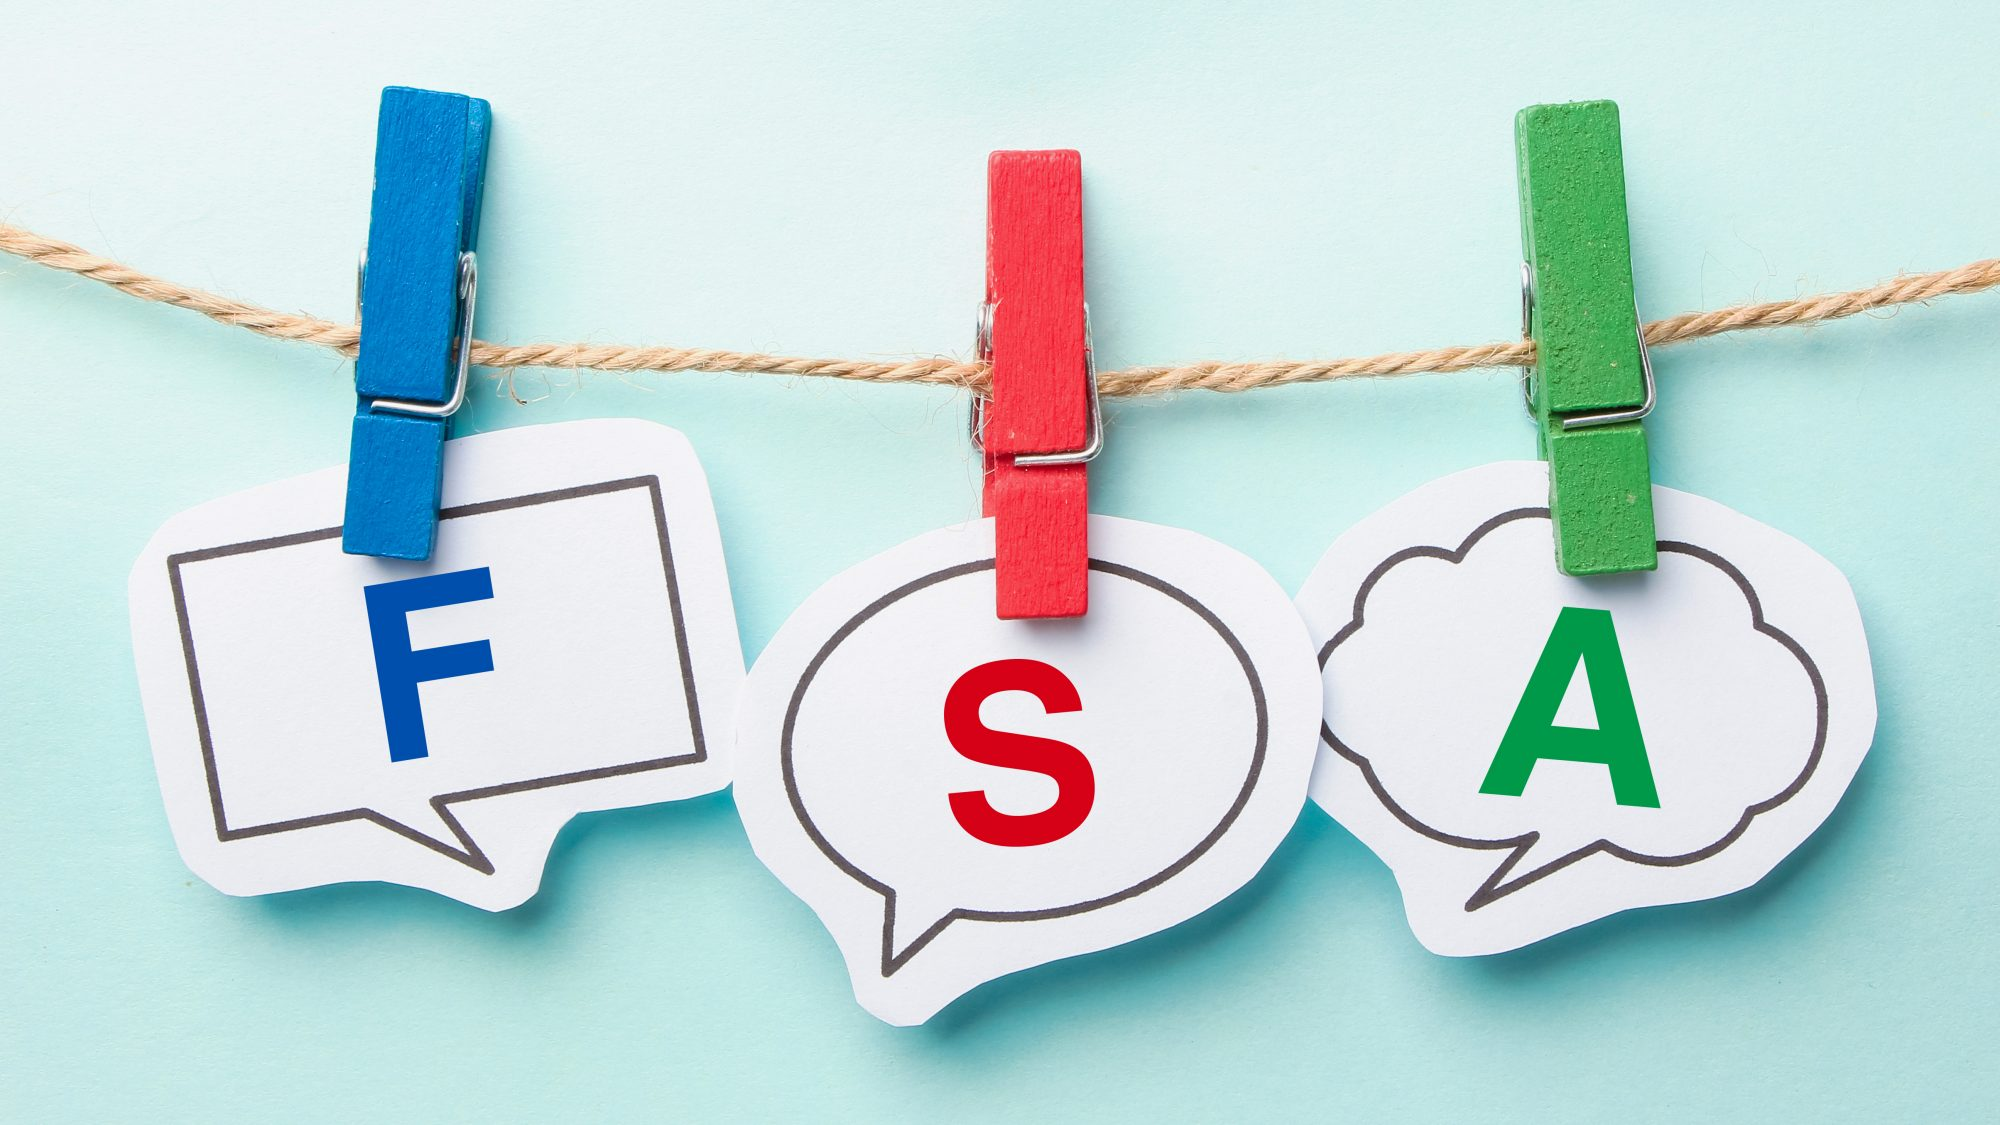 fsa flexible spending account meaning, limits, info